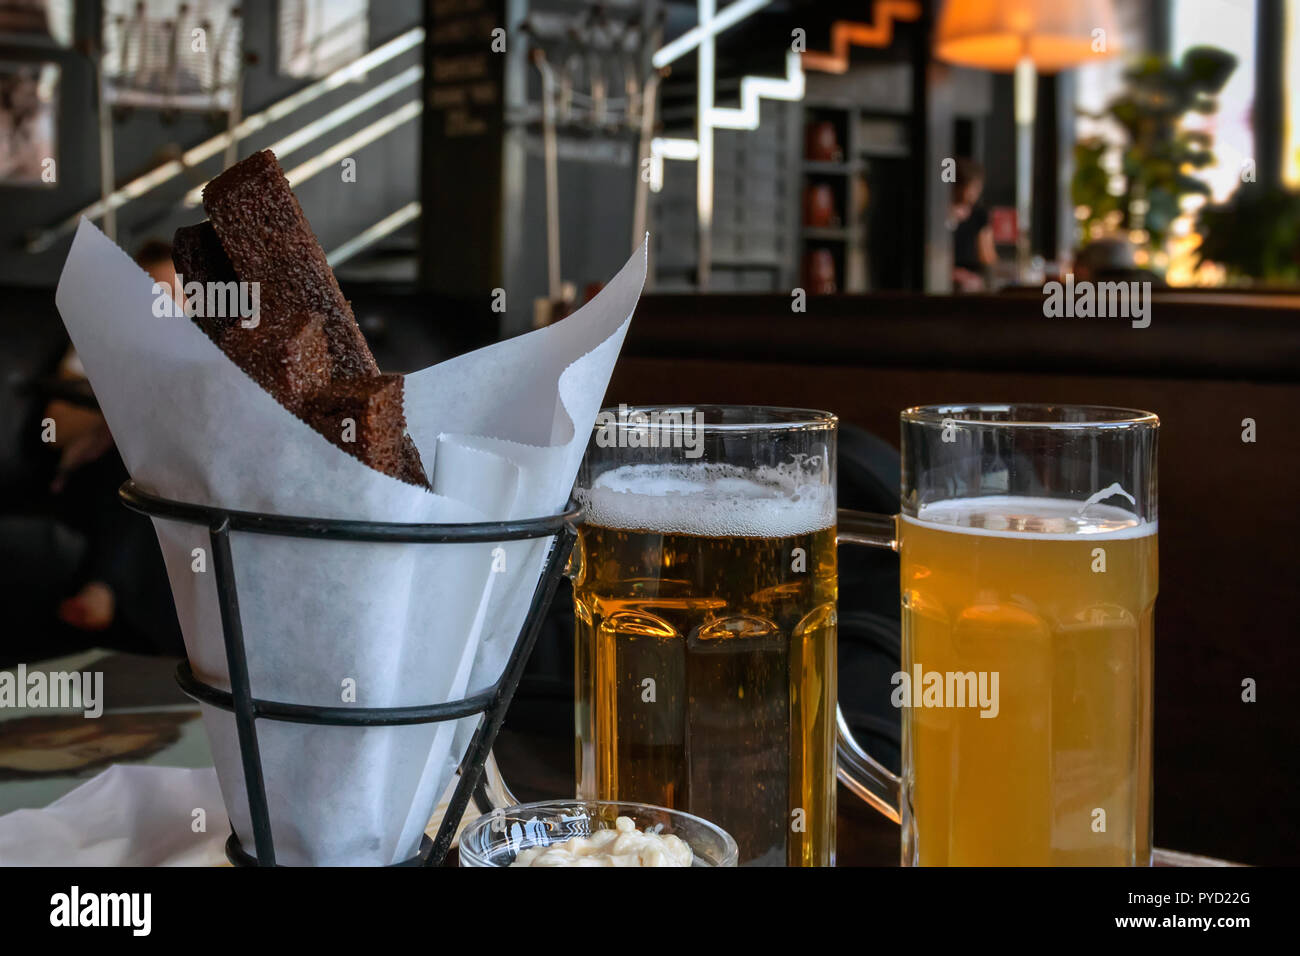 Two glasses of fresh beer different varieties and salty snack, real scene in pub, bar. Oktoberfest, beer festival concept - Stock Image